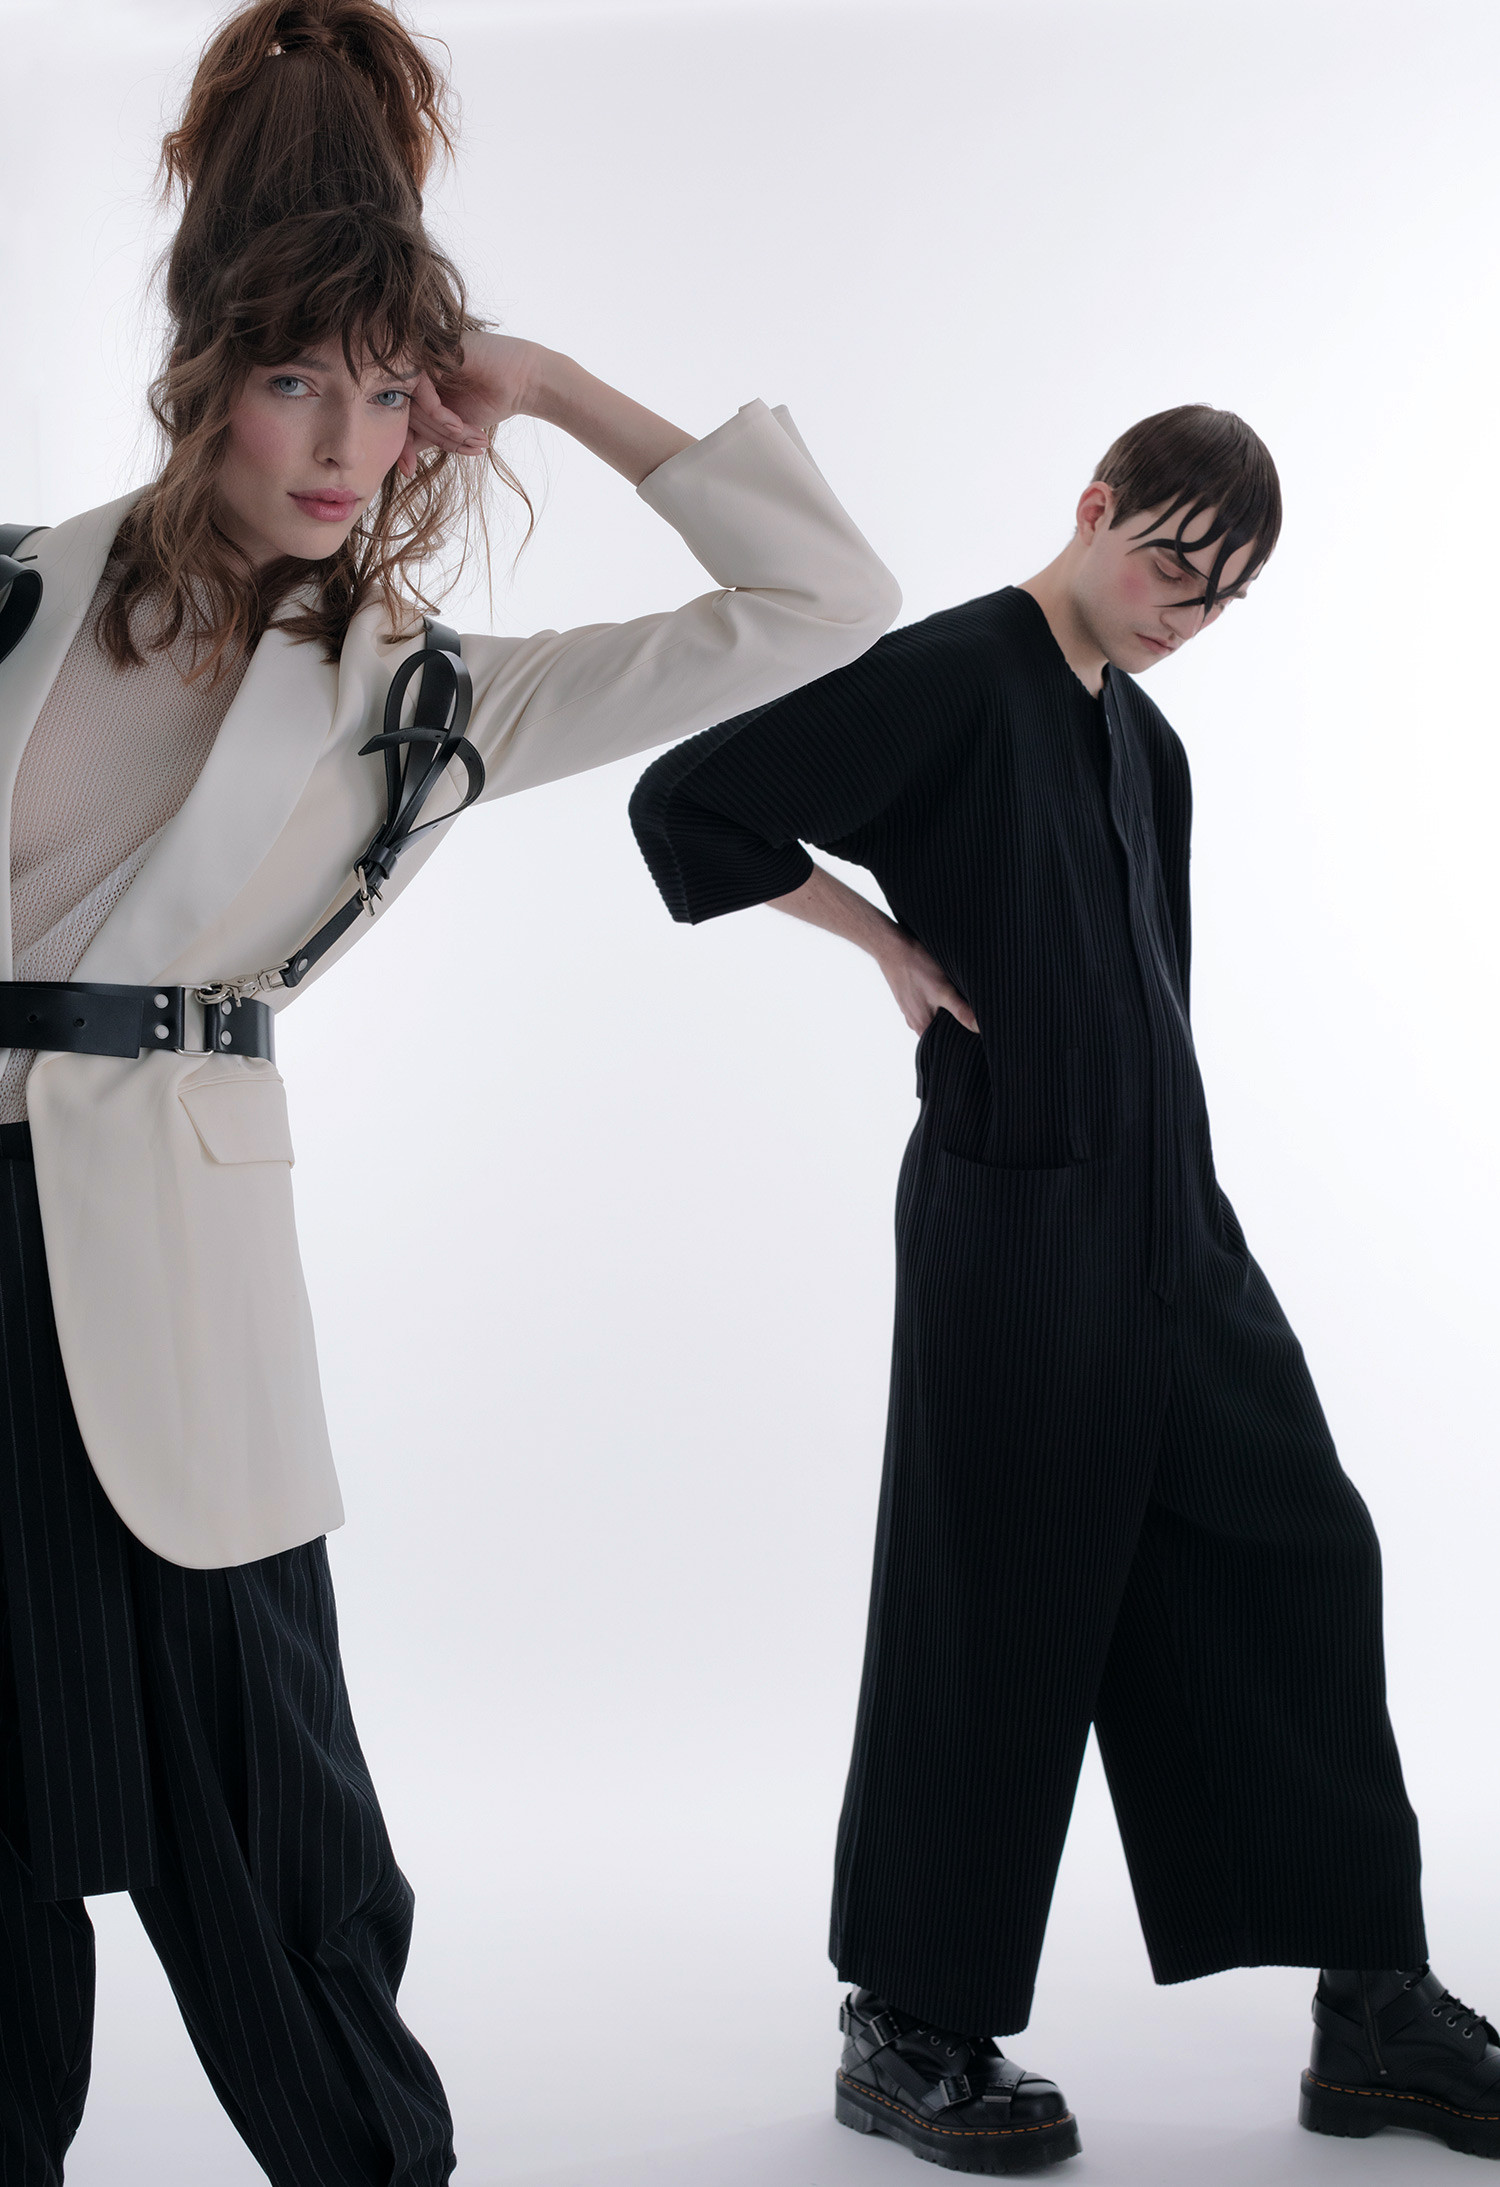 EDITORIAL_theSilhouettes_UH_6561.jpg